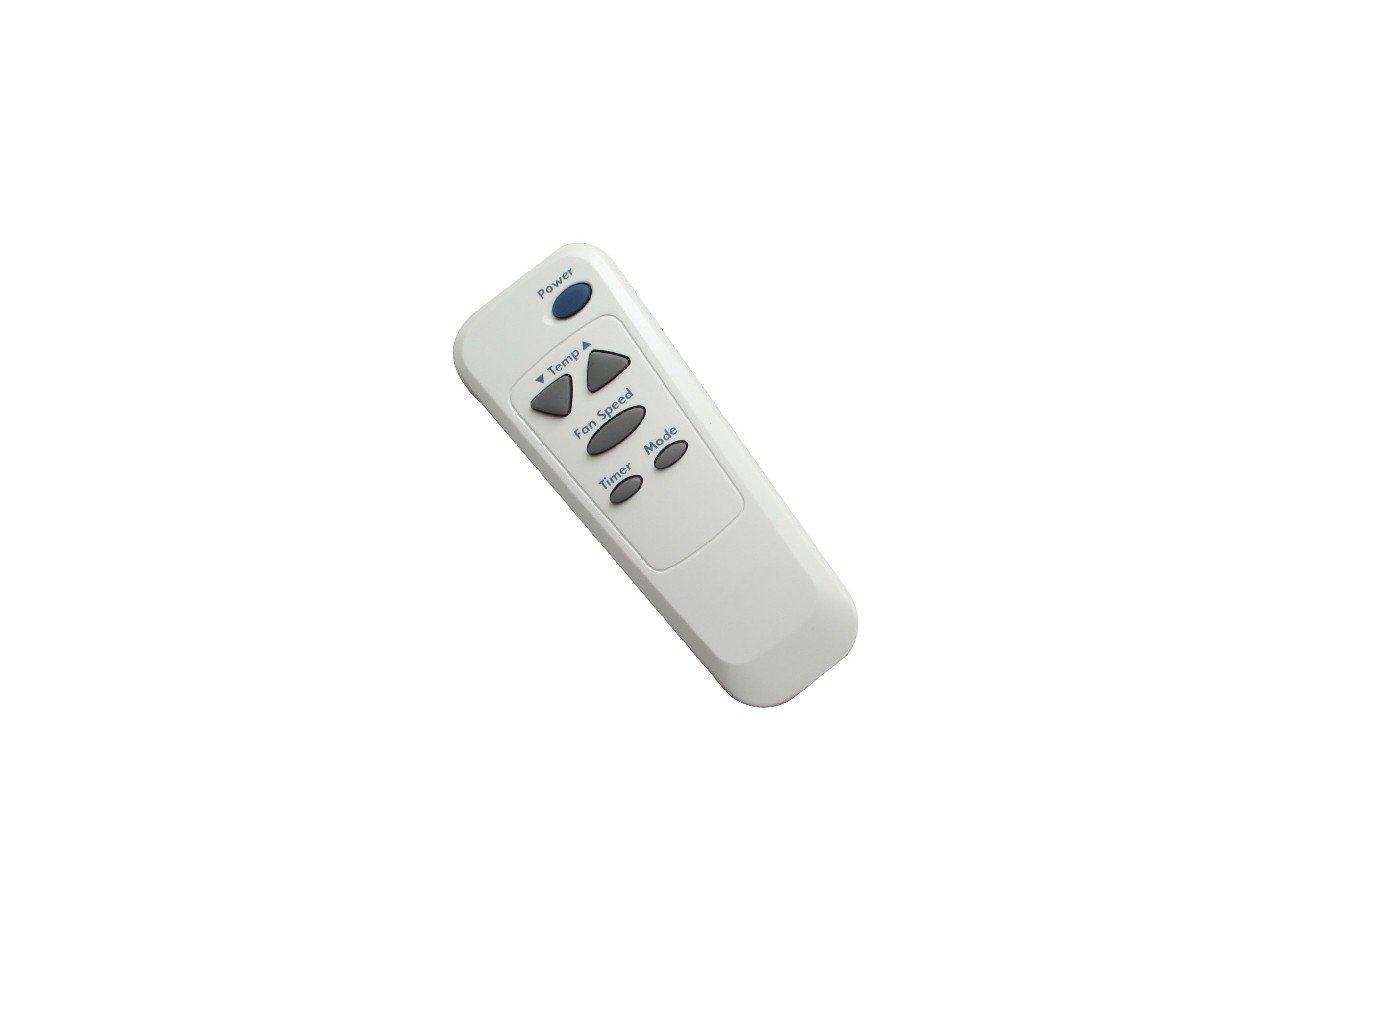 Hotsmtbang Replacement Remote Control For FRIEDRICH US10B30A US10D30A-A US10B30A-A US10D10A US12B30A-A US12B30B US12B30C US12D10A AC Air Conditioner